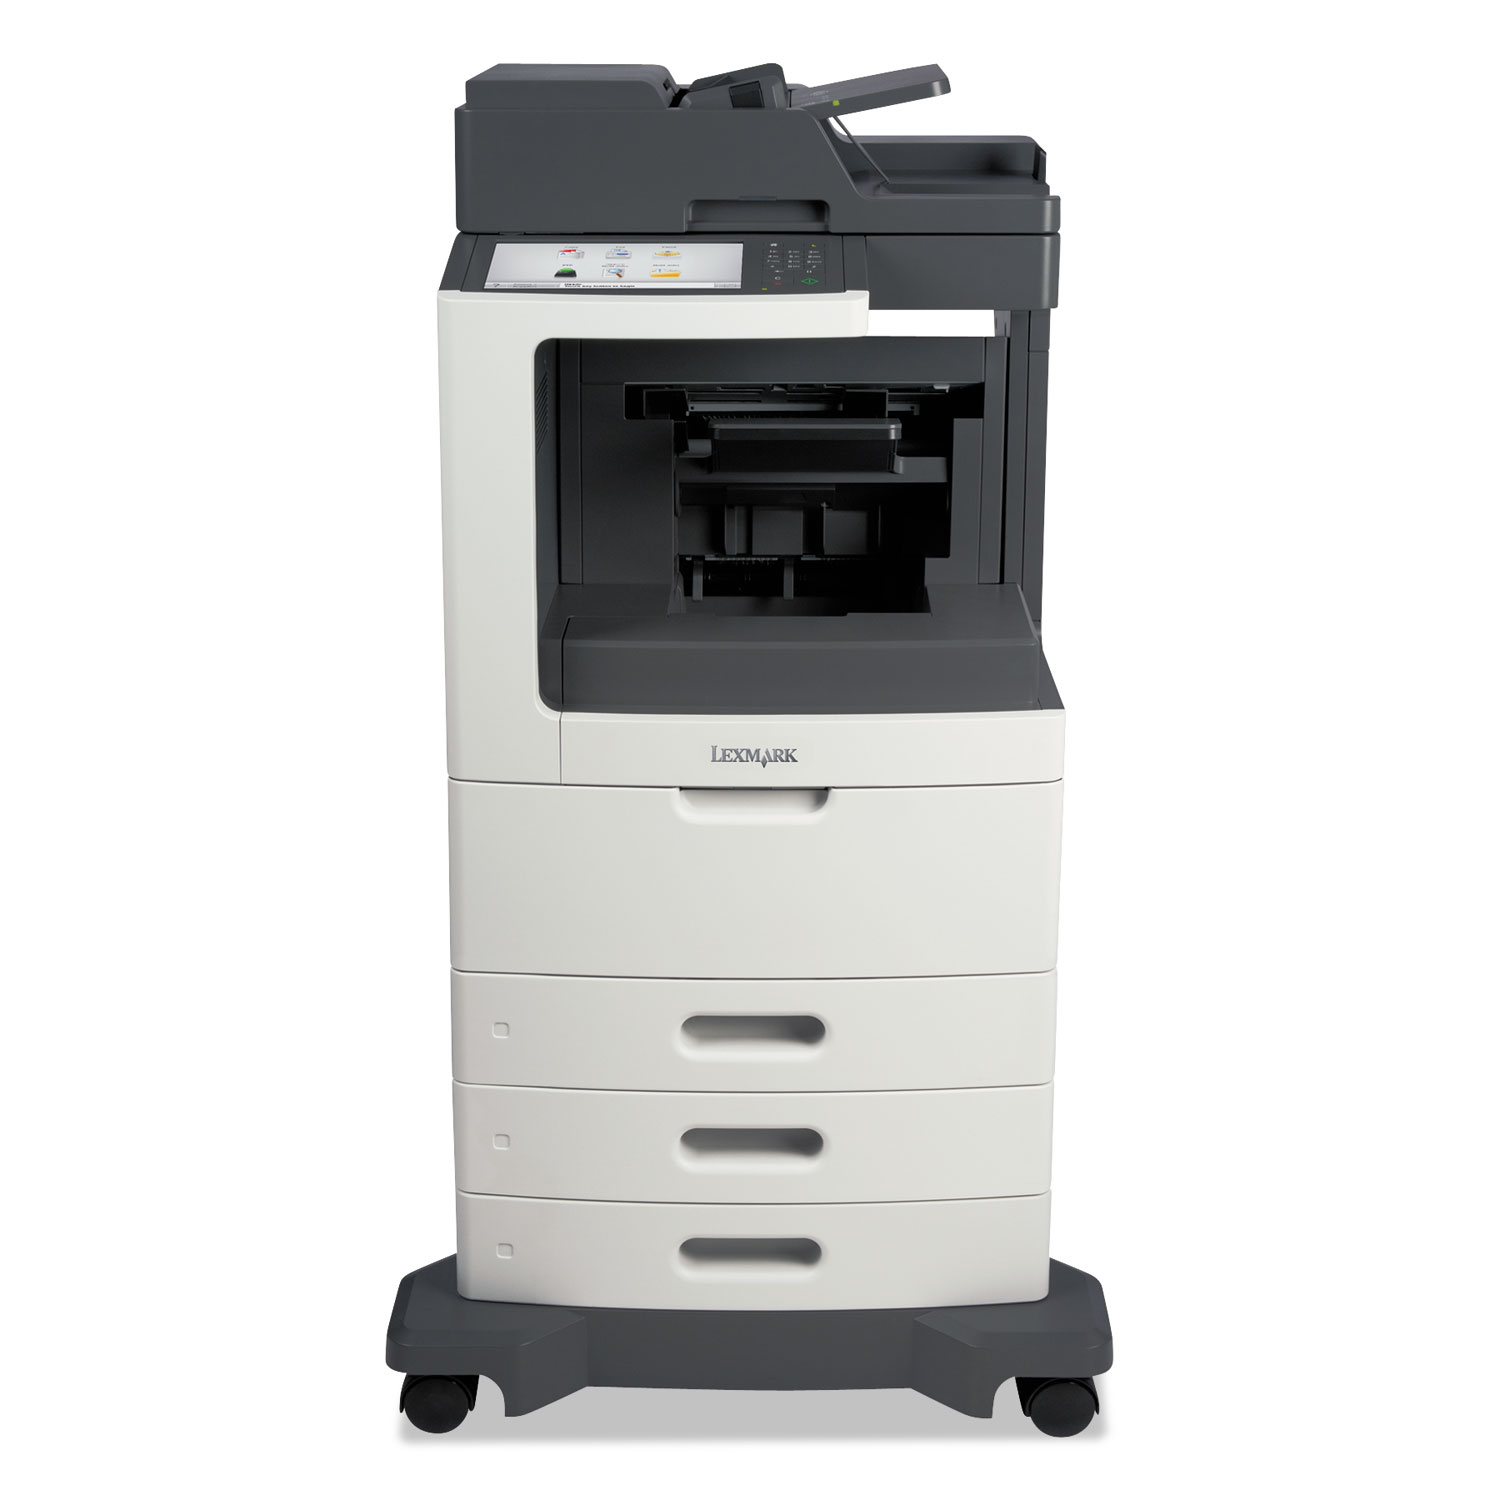 MX812dtfe Multifunction Laser Printer, Copy/Fax/Print/Scan